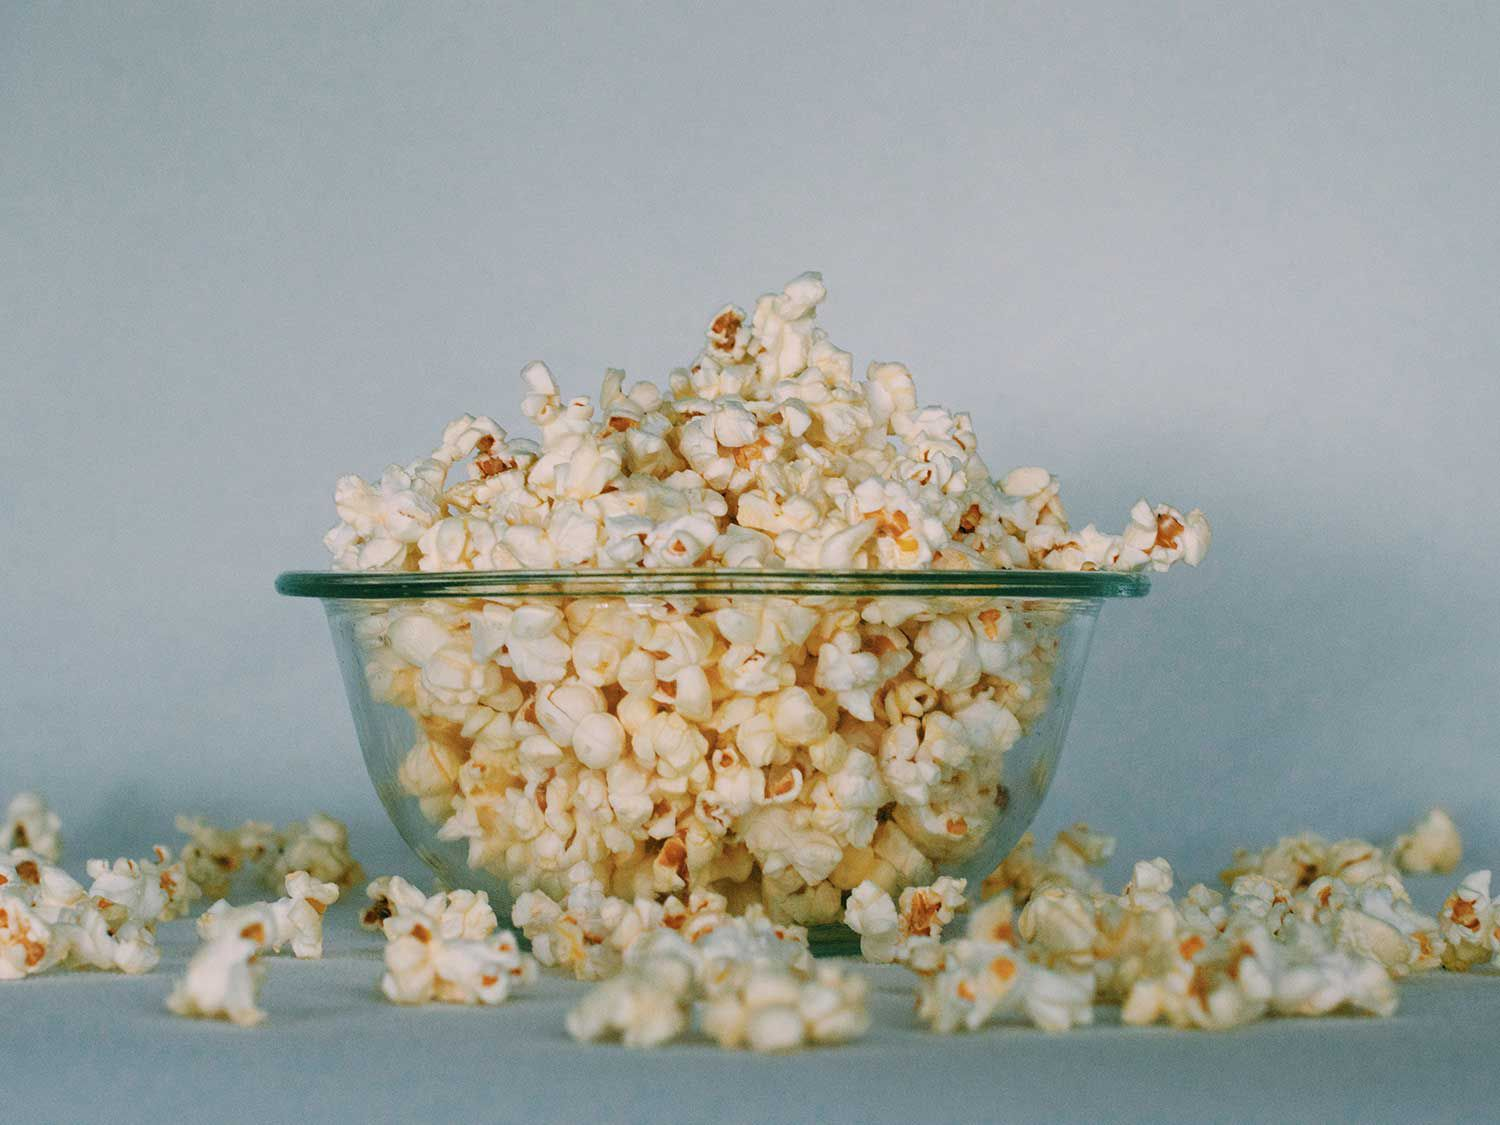 Whether you're nuking your popcorn in the microwave or going old-school on the stove, here are some of our favorite picks.